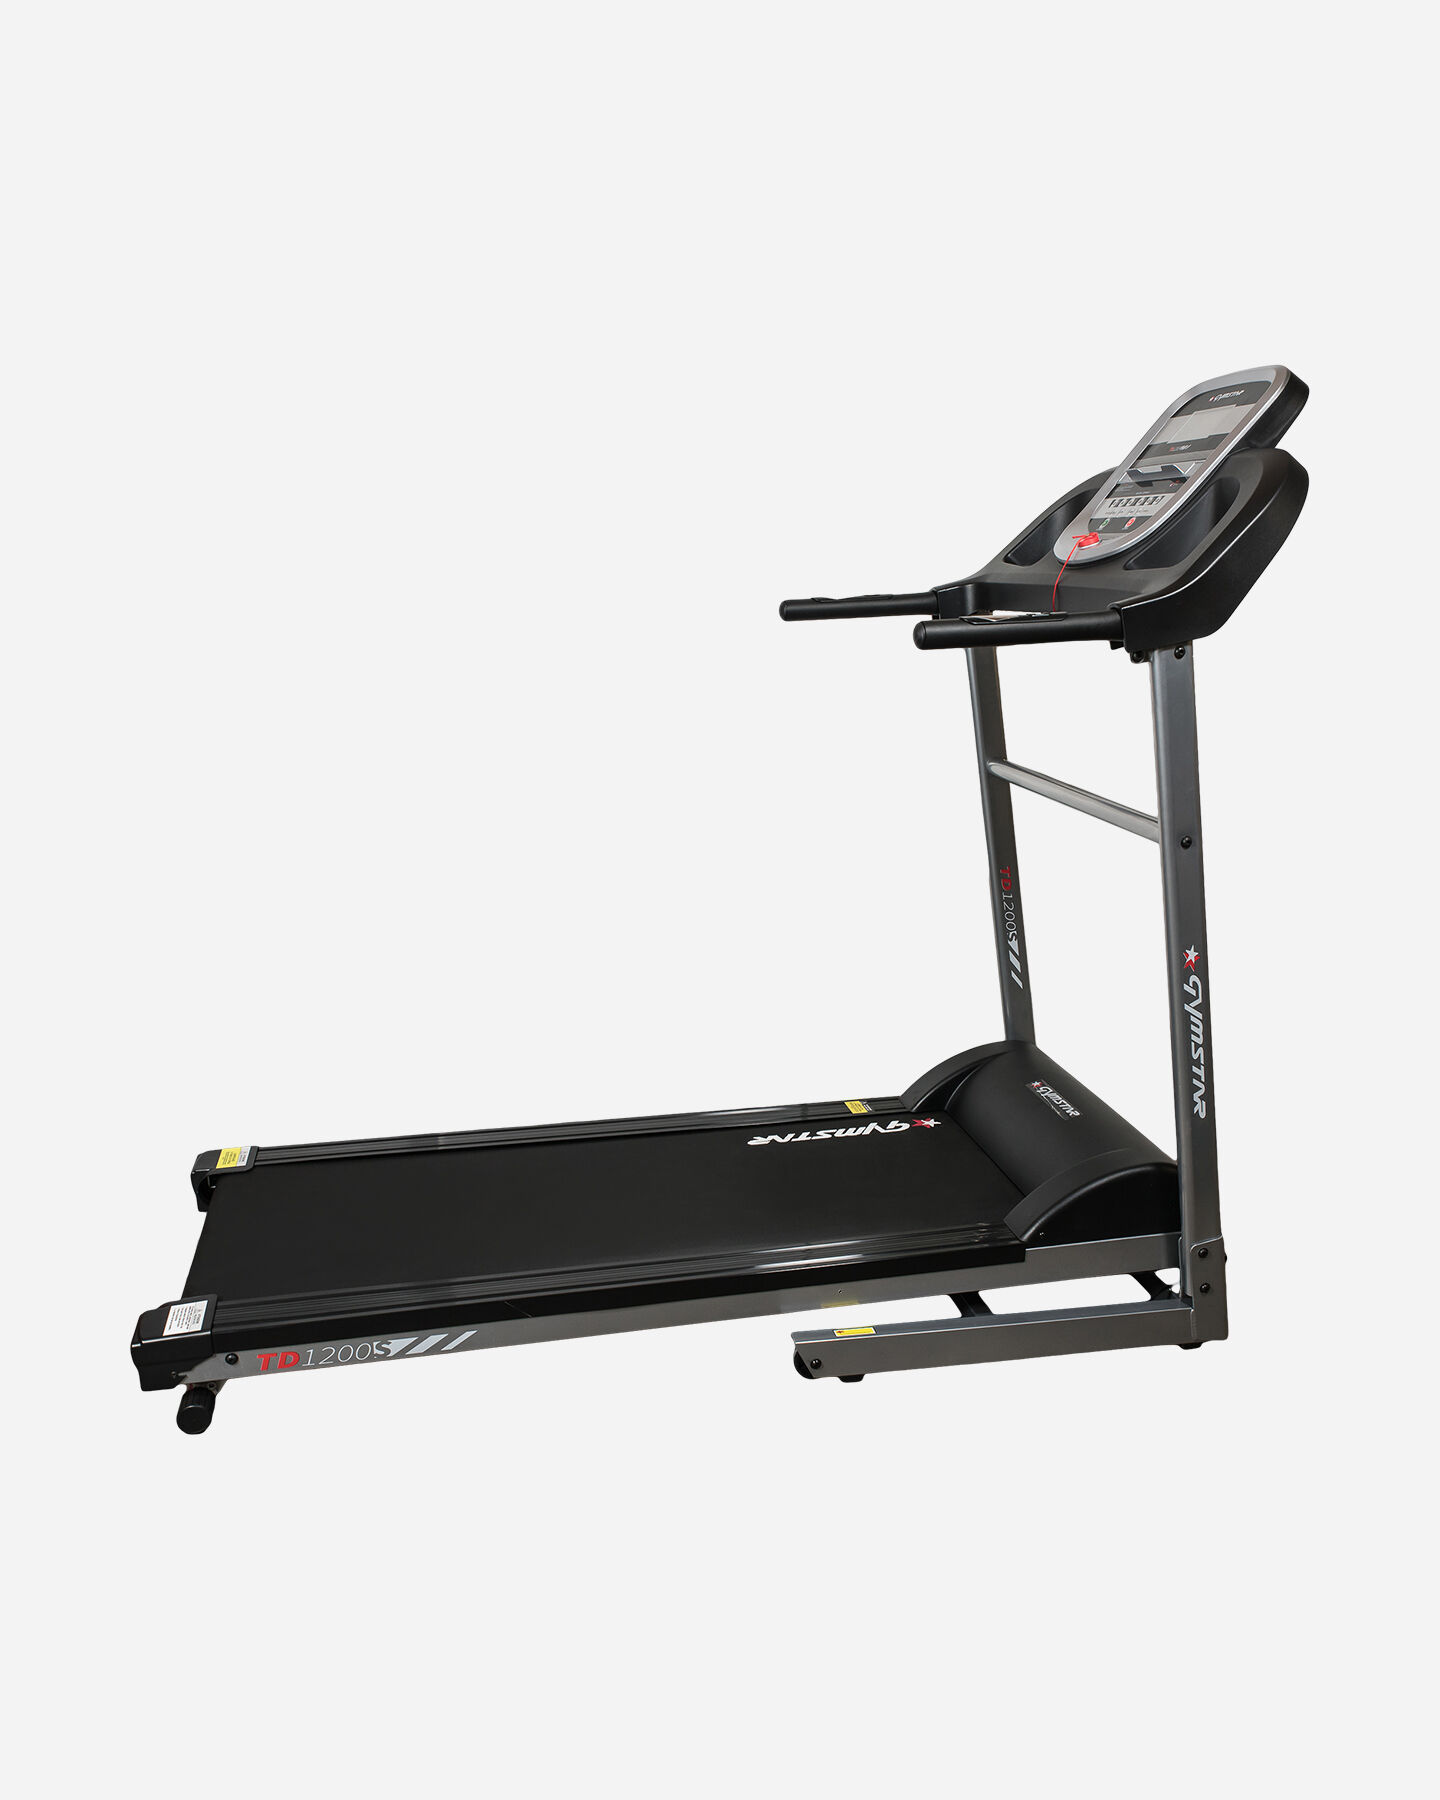 Tapis roulant CARNIELLI GYMSTAR TD 1200S S4031139 1 UNI scatto 0